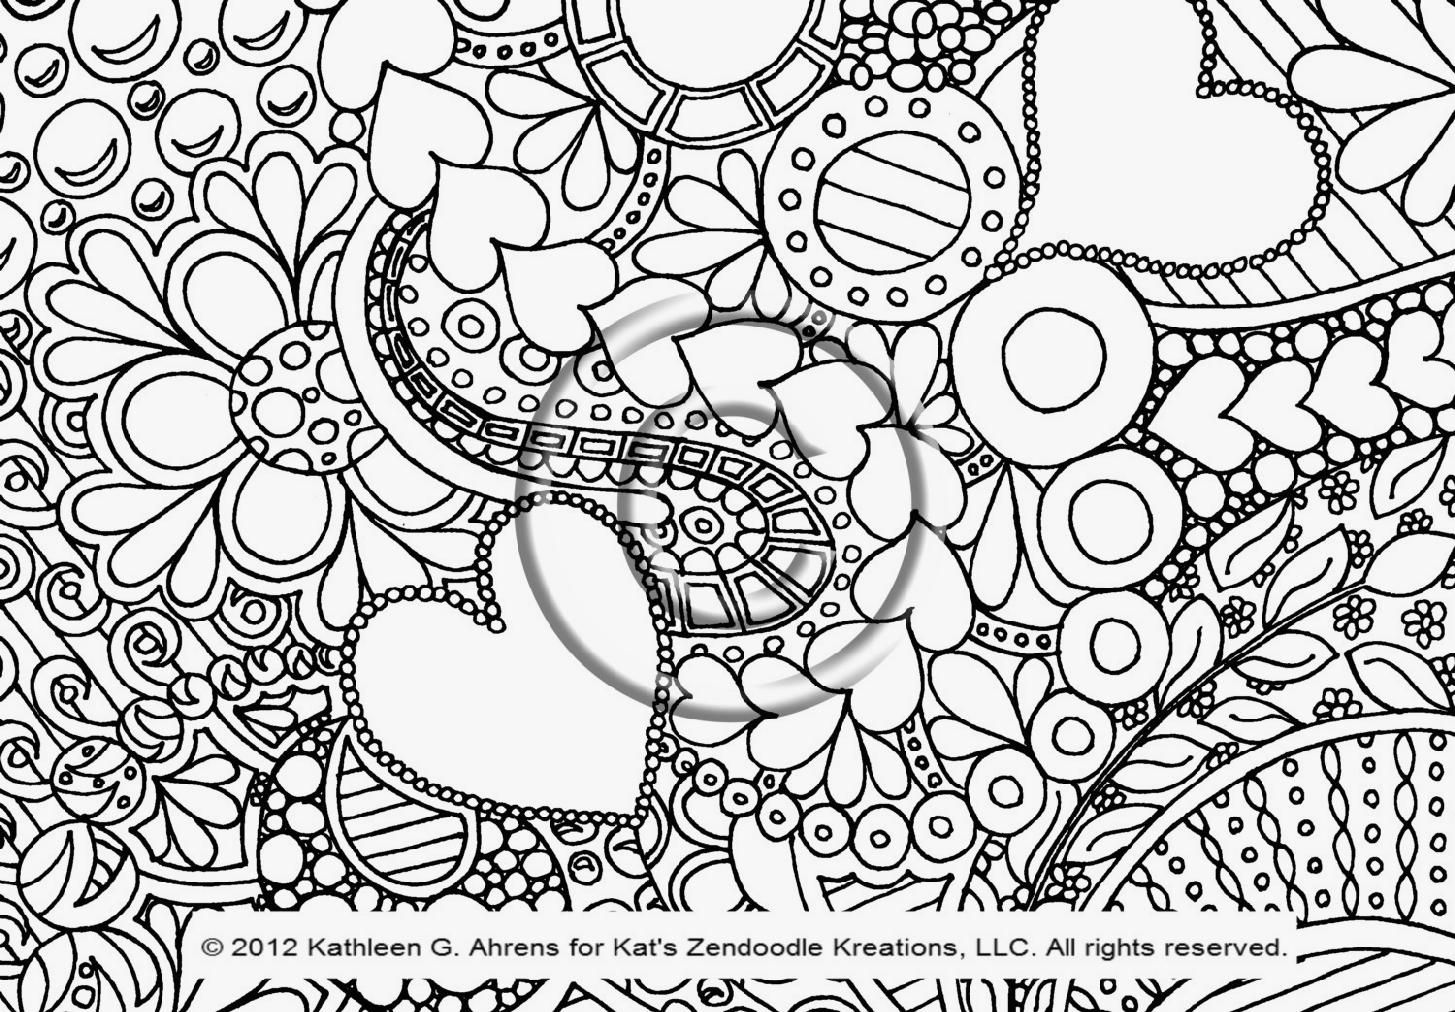 Free coloring pages kaleidoscope designs - Doodle Art Coloring Sheets Coloring For Kids Pinterest